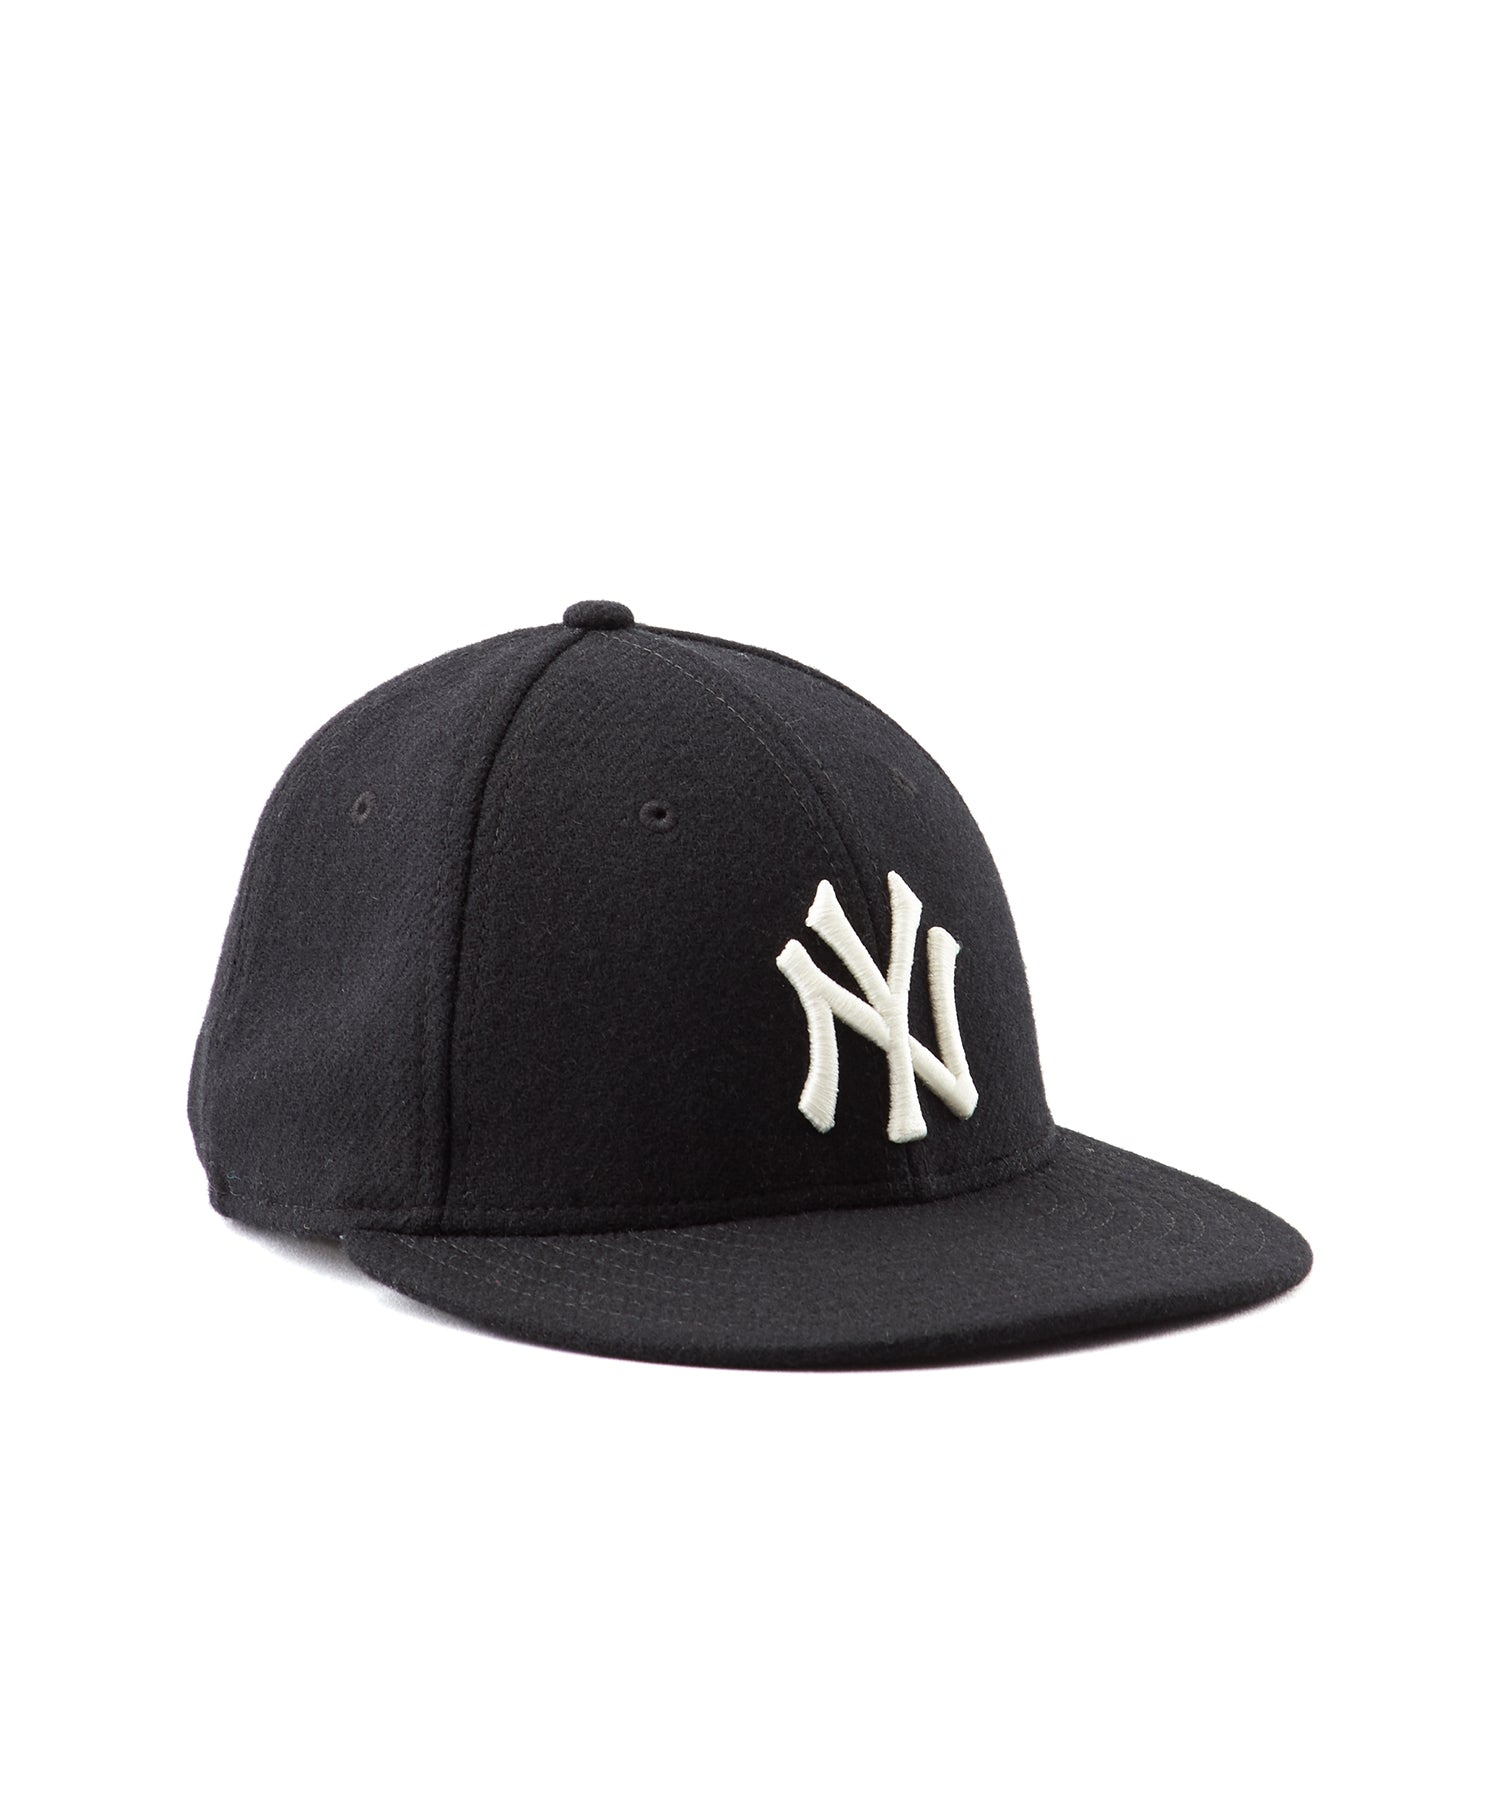 dbbbb43a Todd Snyder + New Era NY Yankees Black Wool Hat